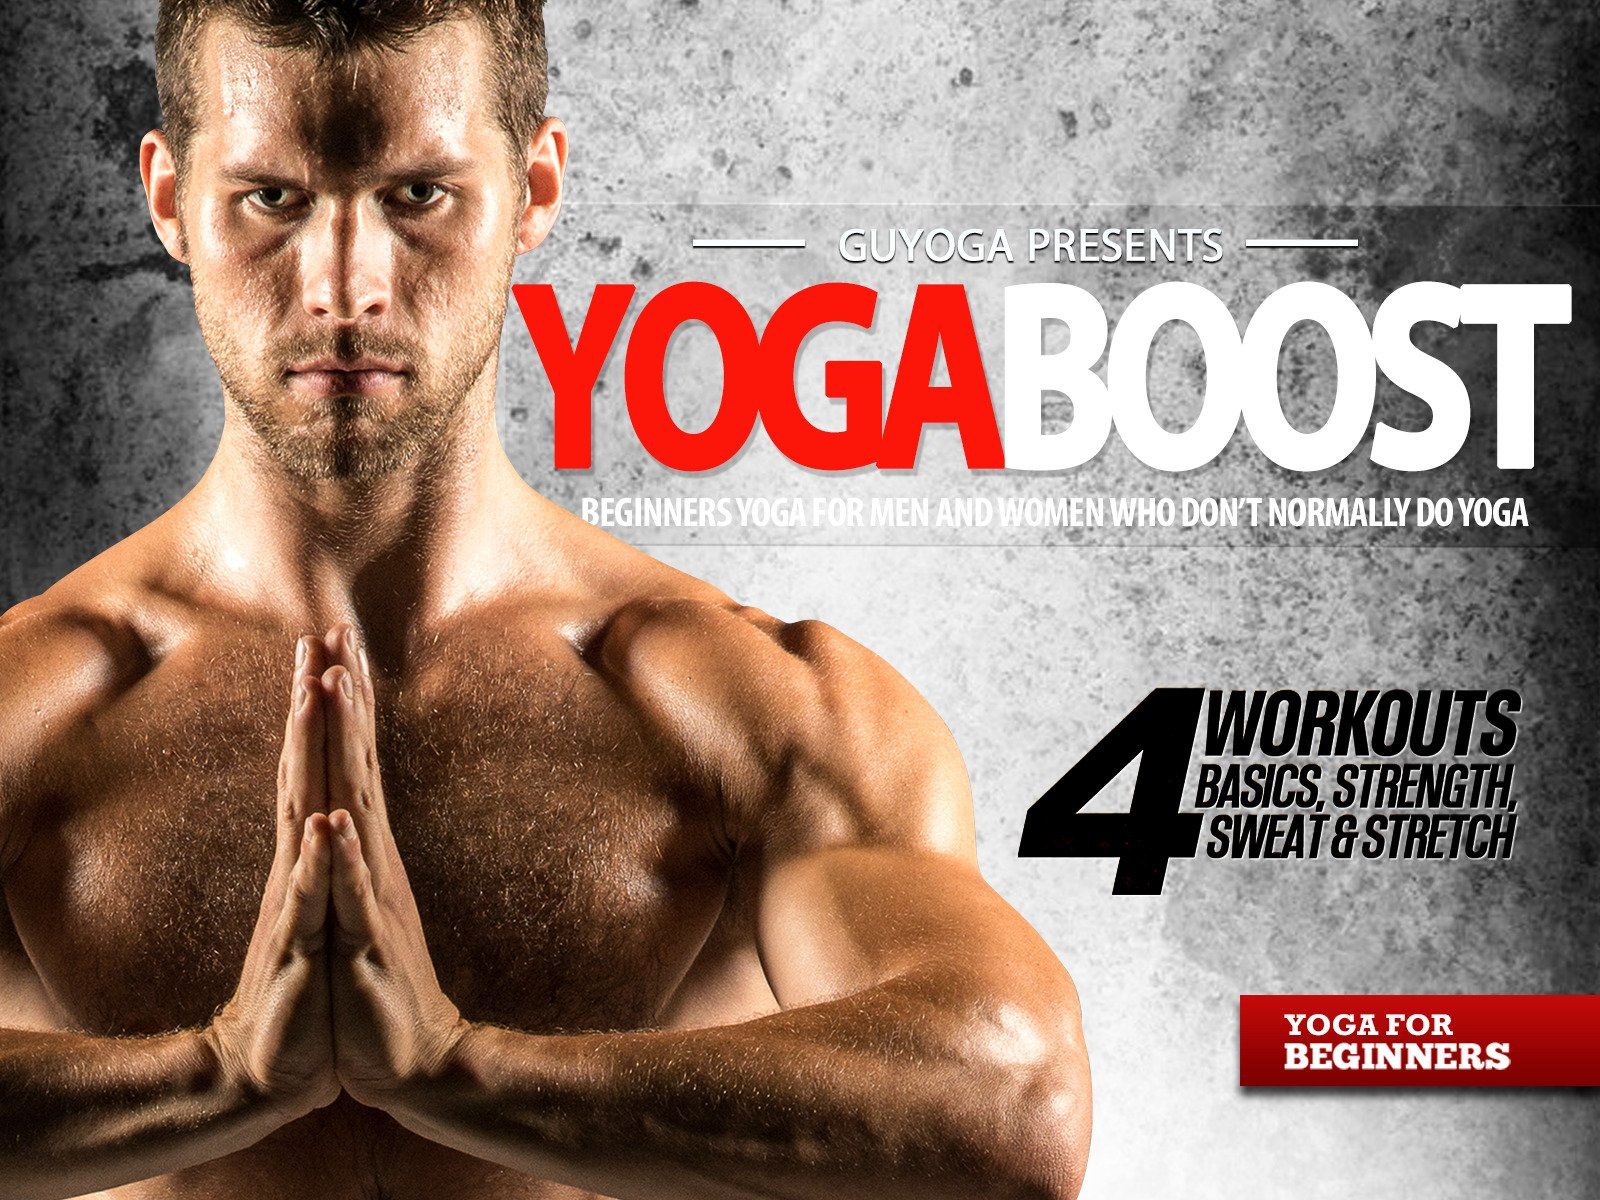 Amazon.com: Watch Yoga Boost - Beginners Yoga For Men And ...